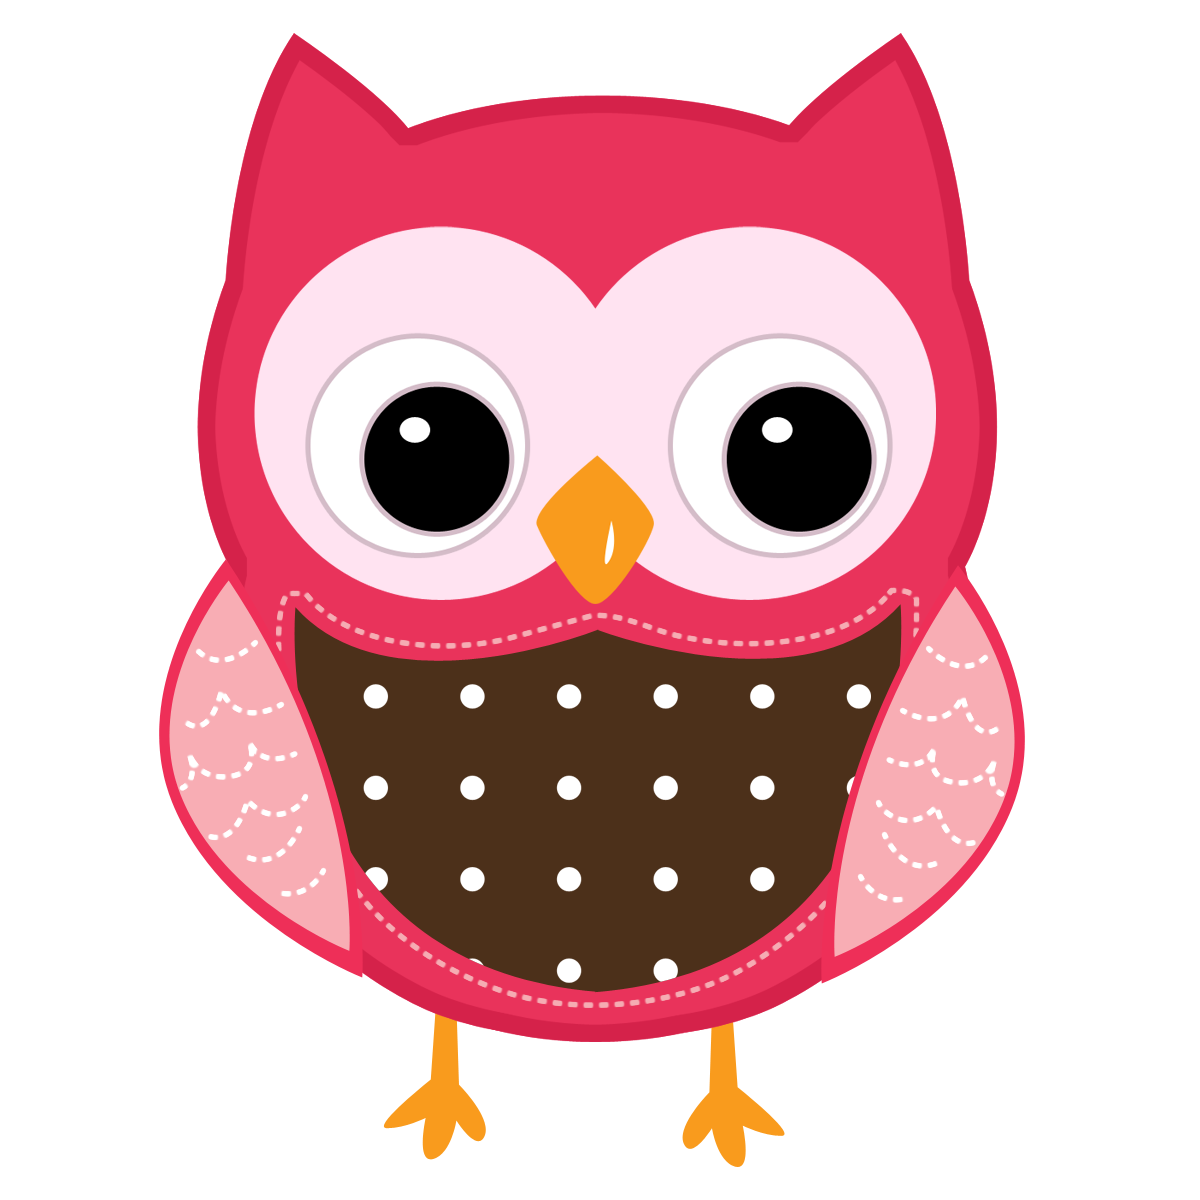 Clipart library owl. Free download clip art